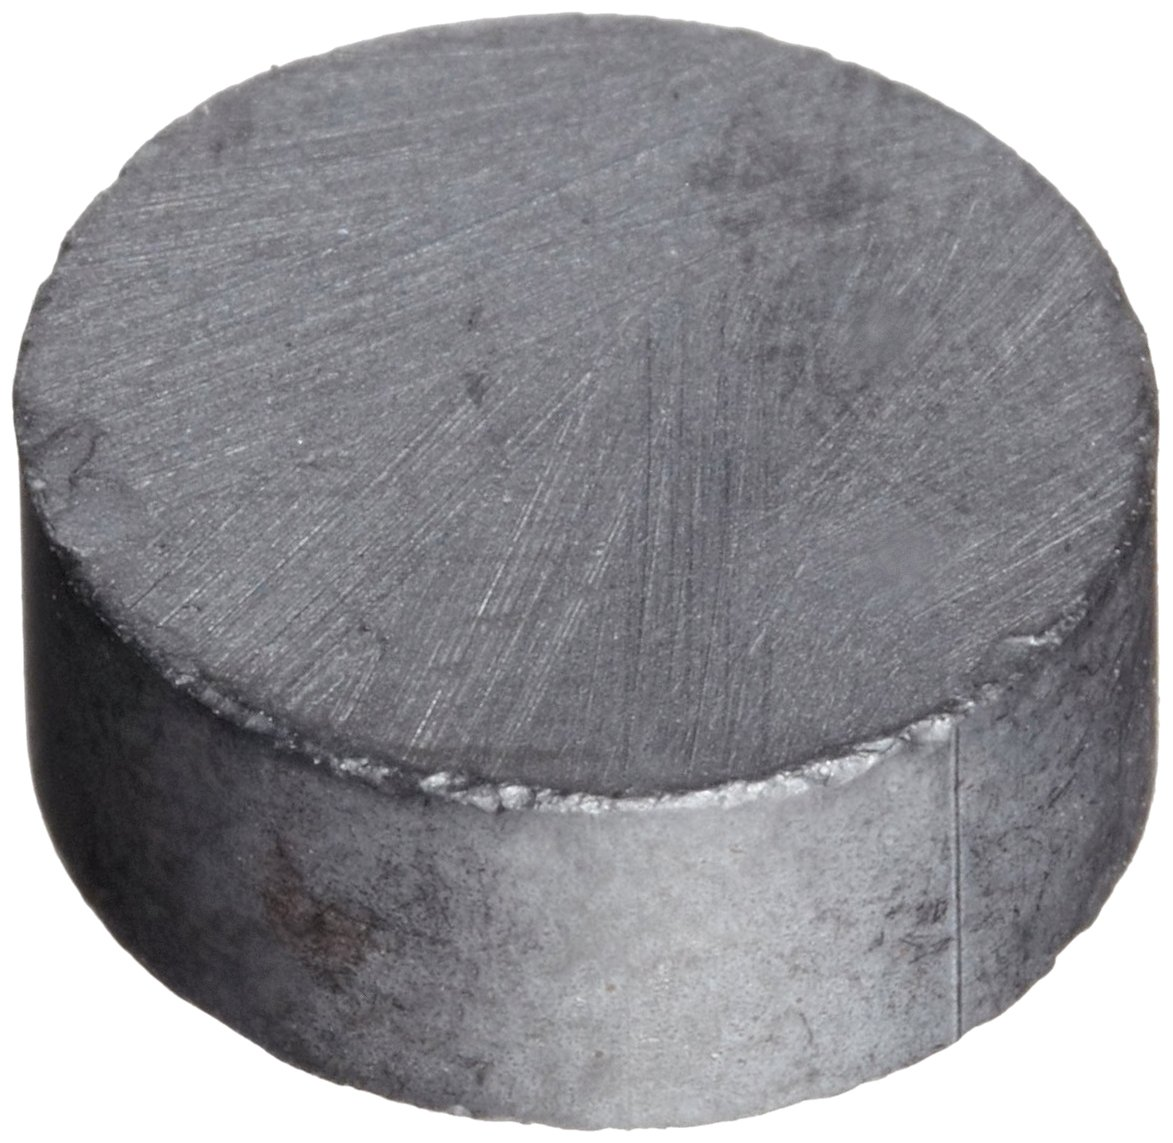 Ceramic Disc Magnets, 0.472' Diameter, 0.197' Thick (Pack of 40) 0.472 Diameter 0.197 Thick (Pack of 40) Magnet Source TMS7048